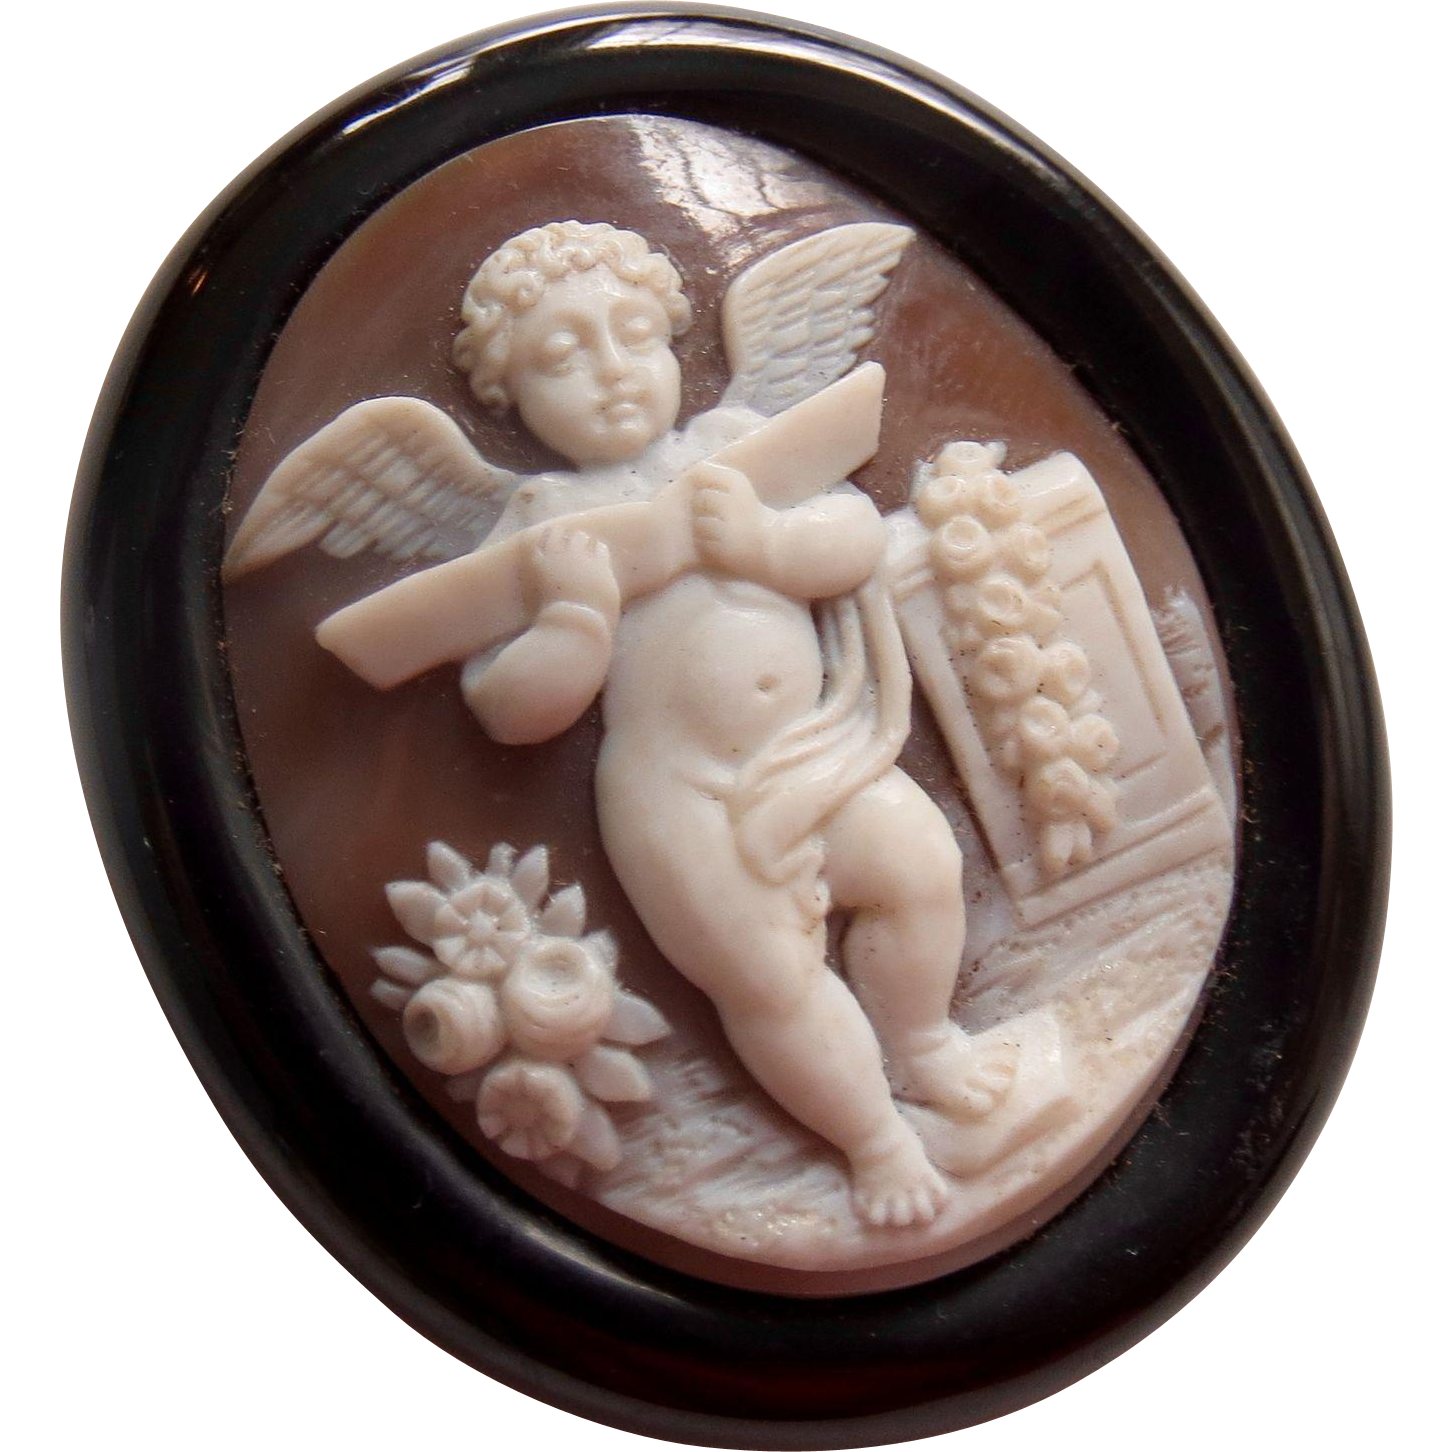 Antique Large Exquisite Victorian Mourning Cherub Cameo